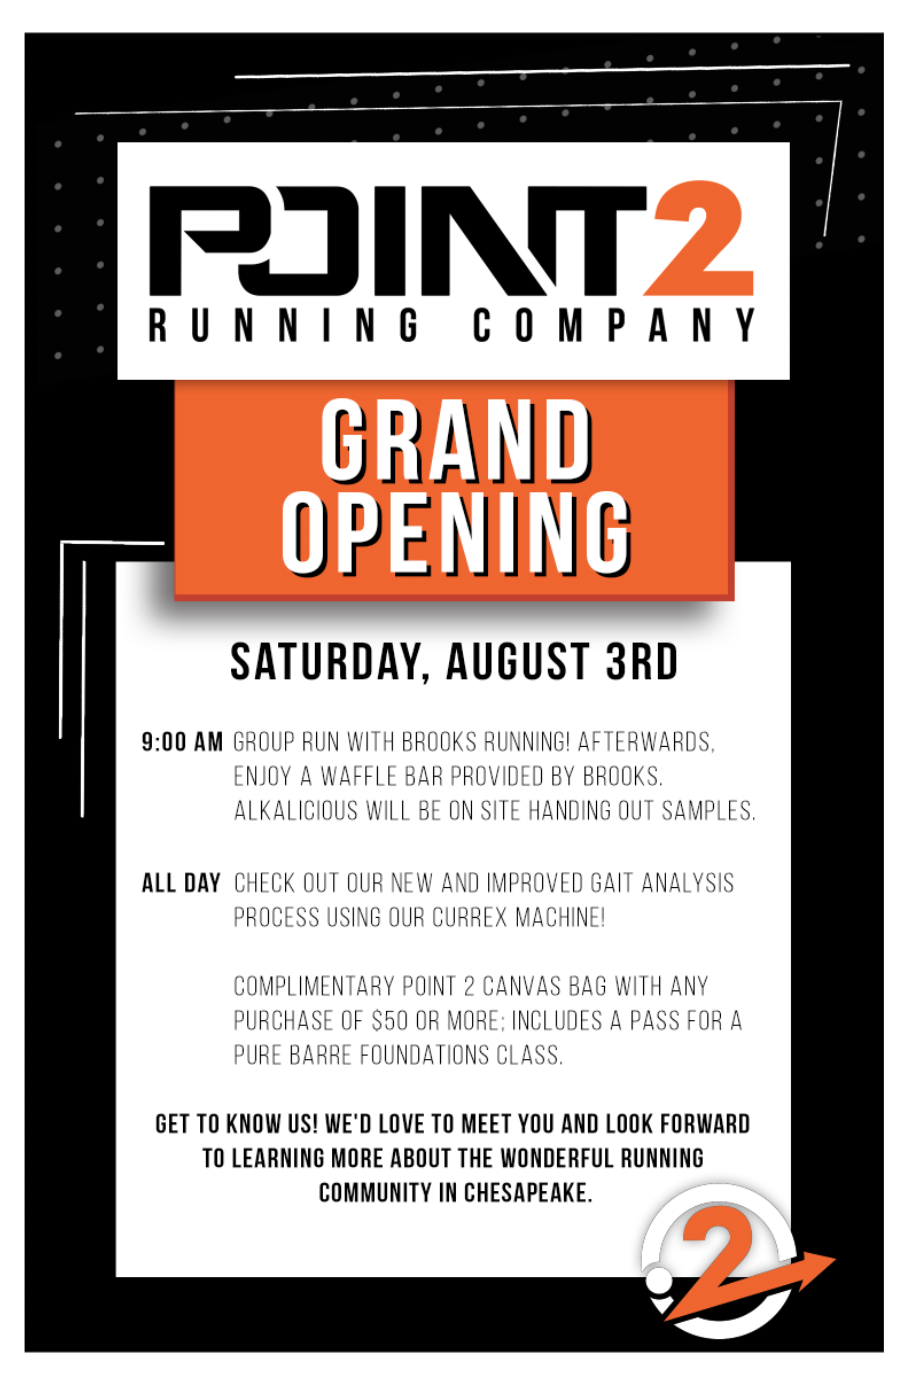 Point 2 Running Company Grand Opening